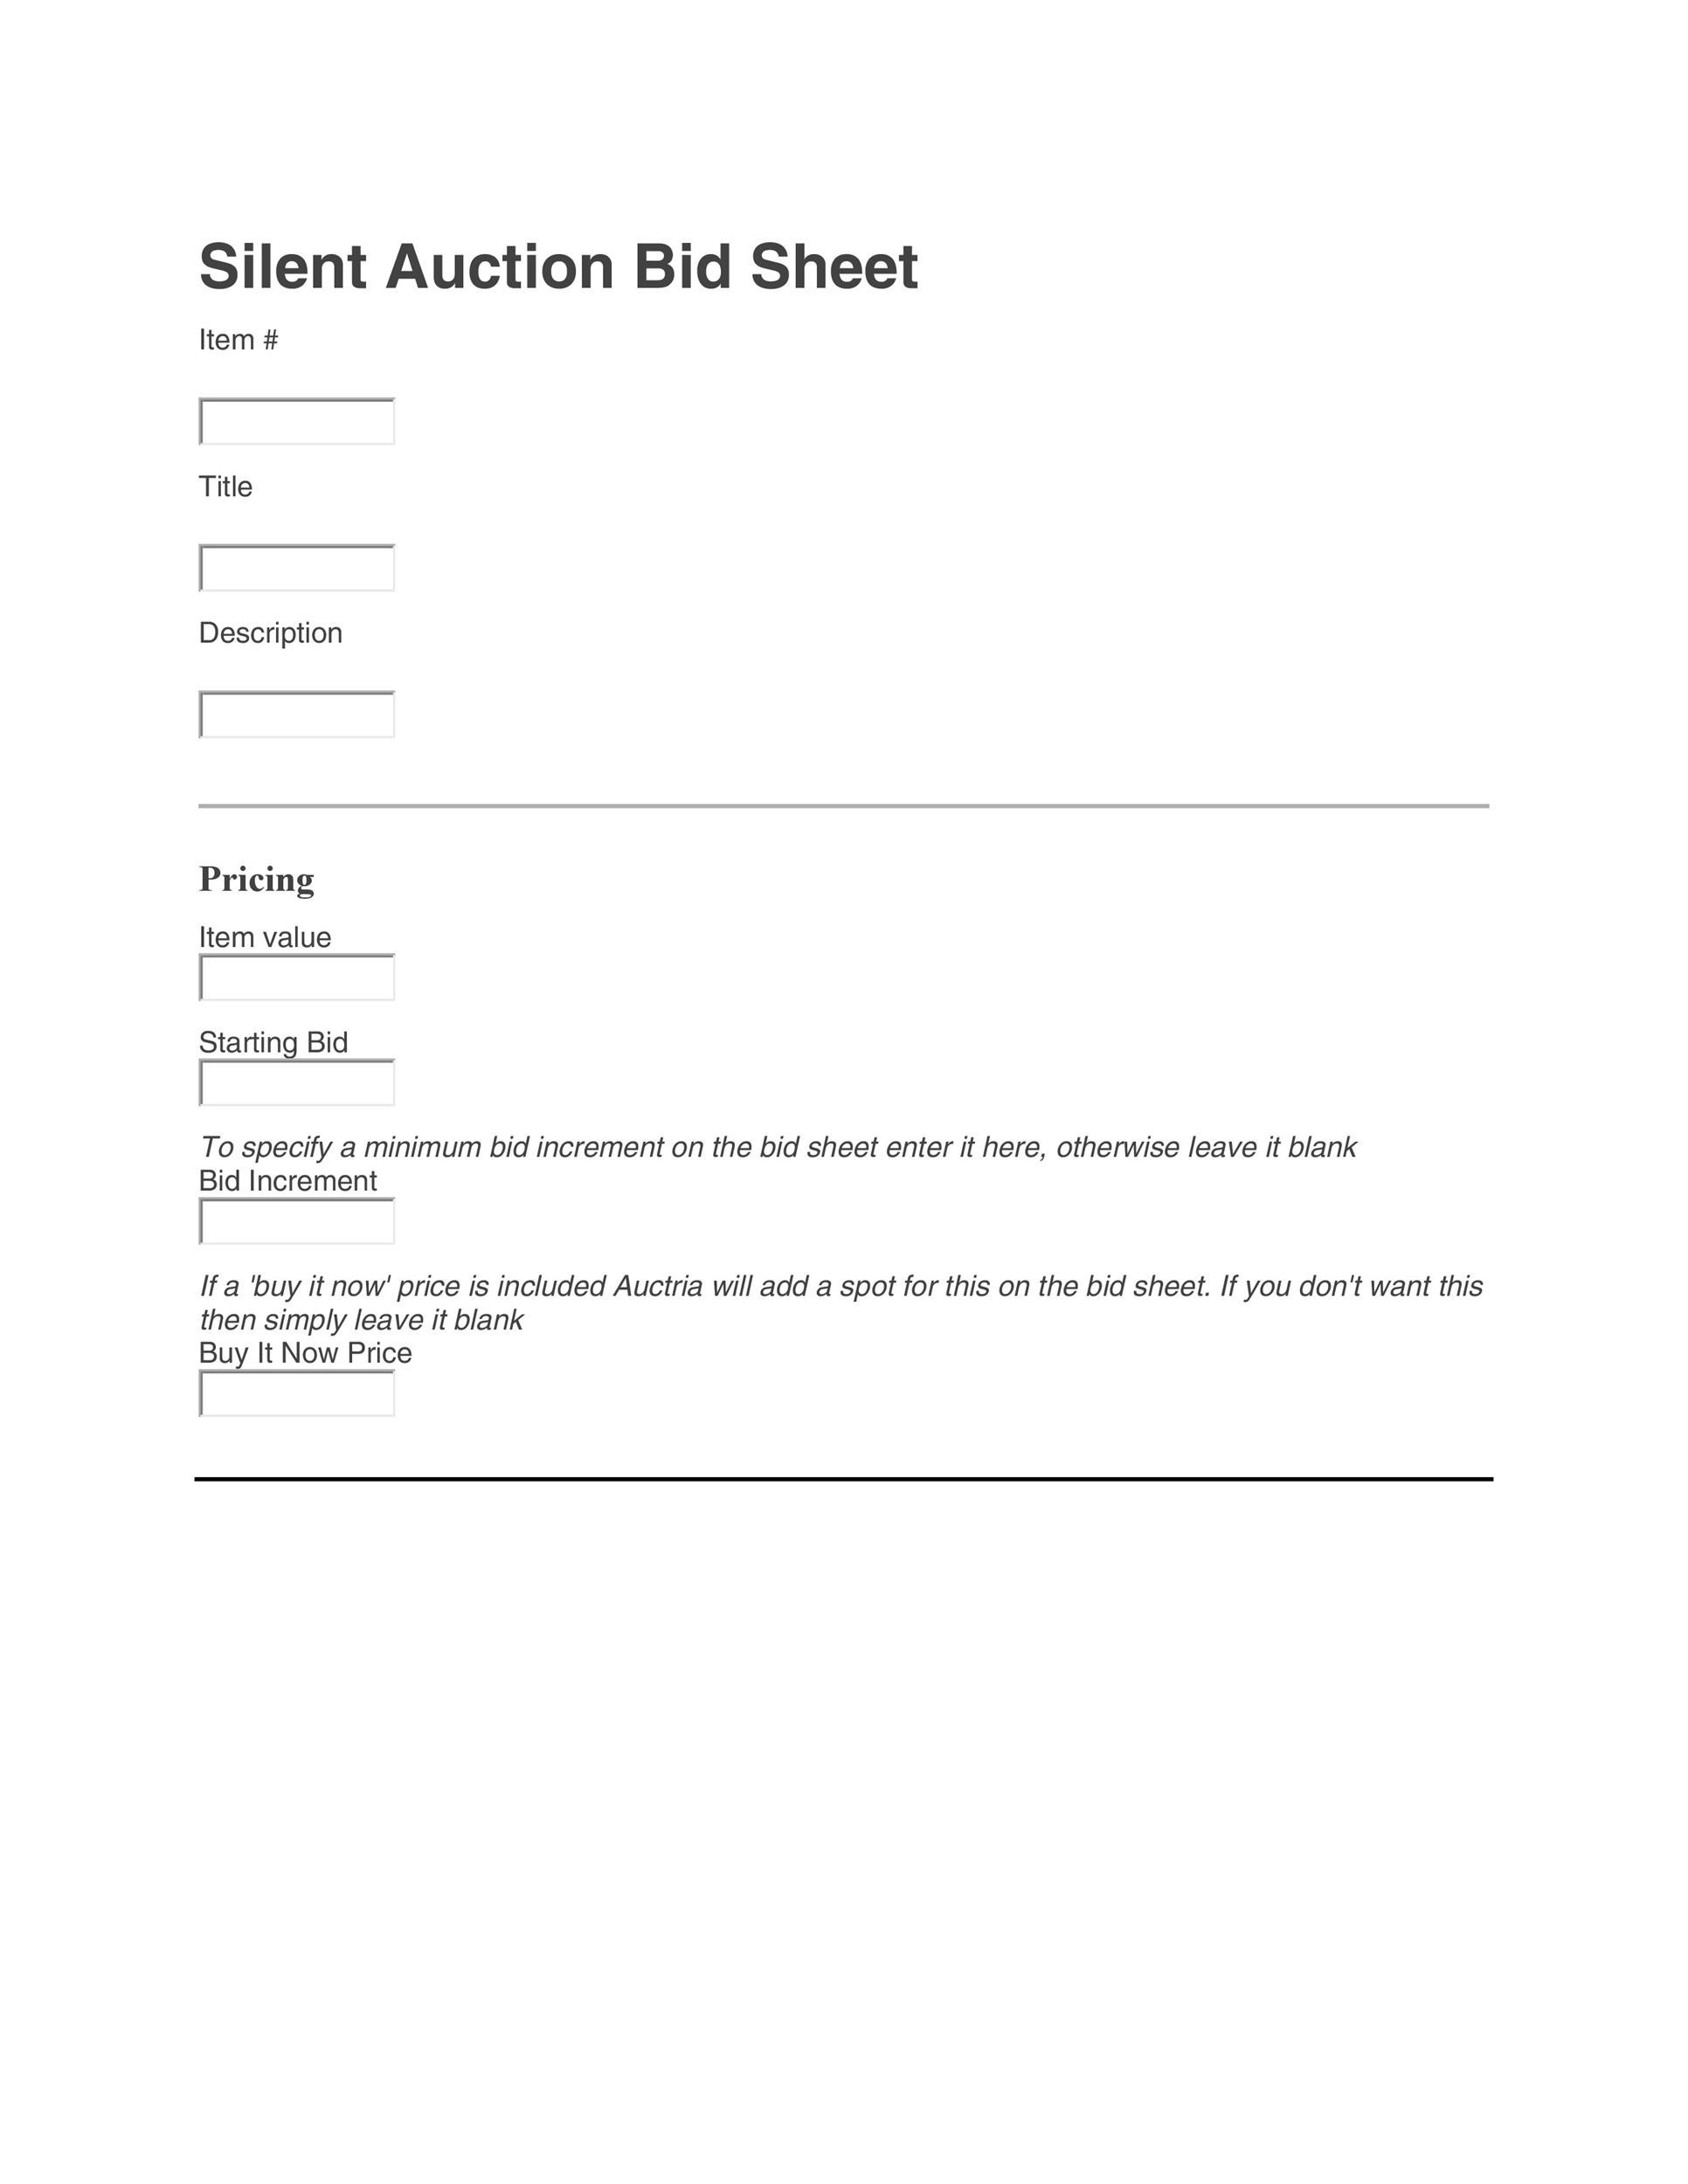 Free Silent Auction Bid Sheet 27